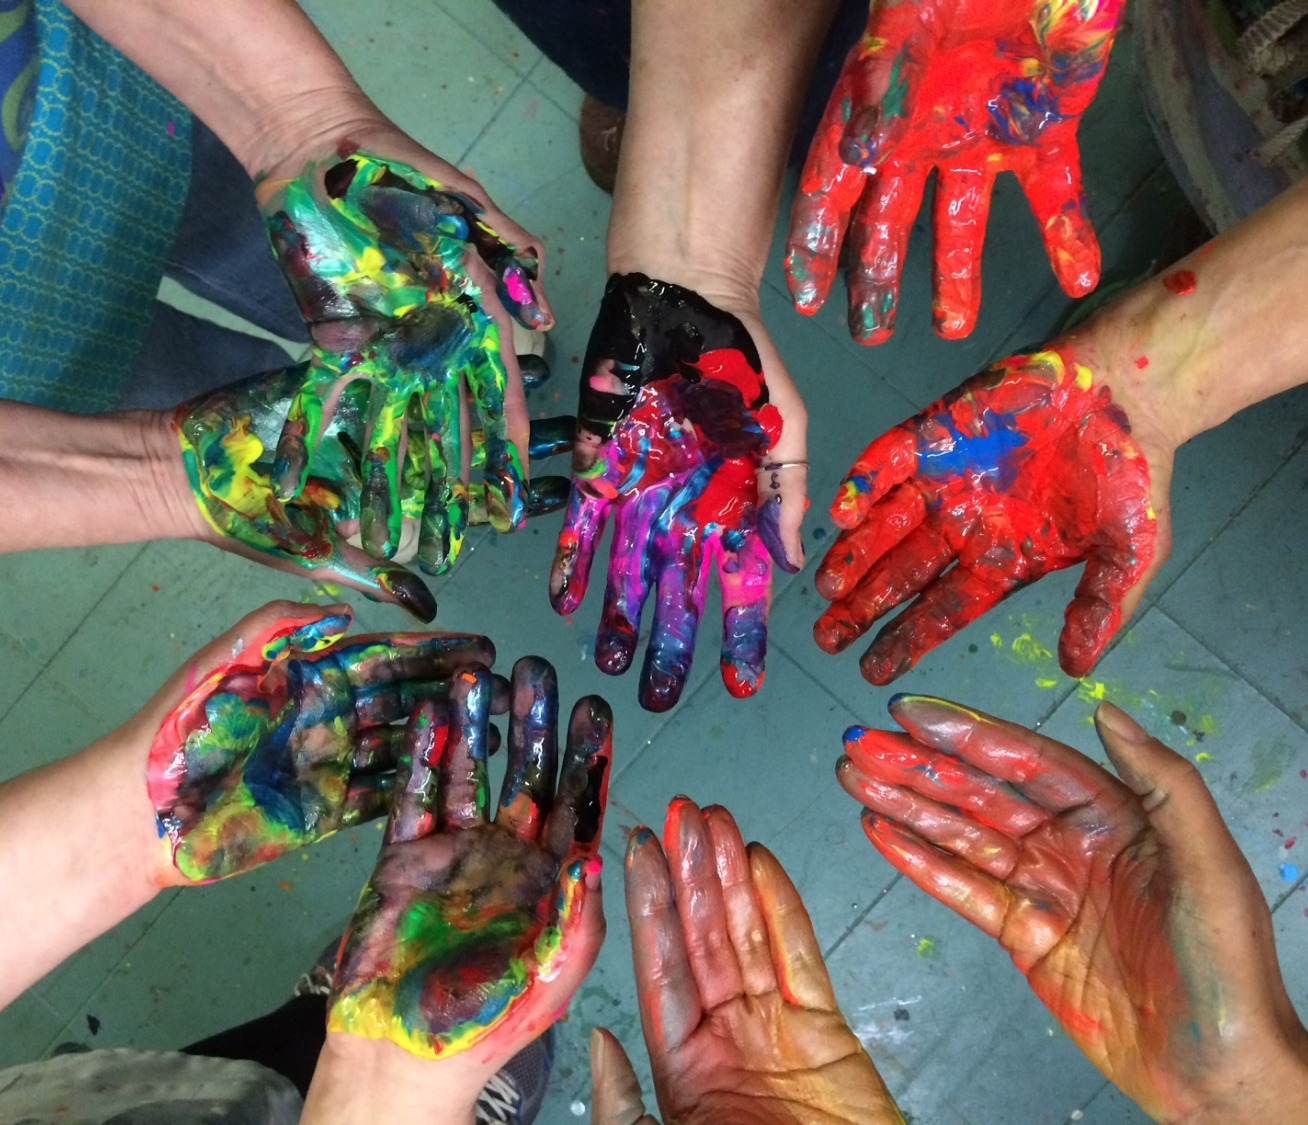 Hands on Paint! Only at Nadine's.